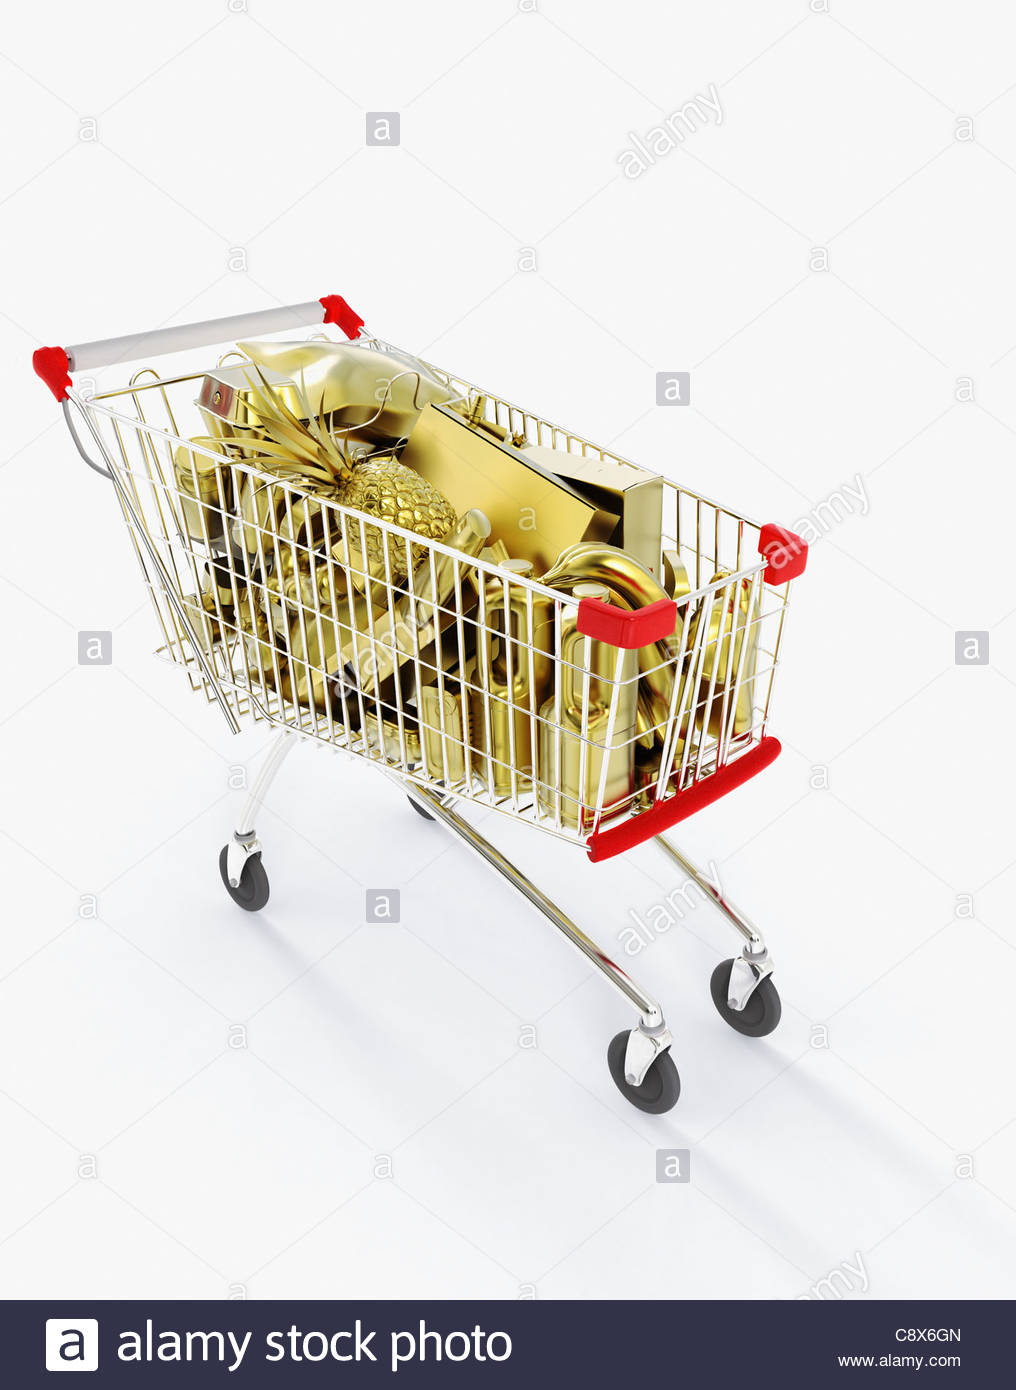 Shopping cart full of gold groceries - Stock Image